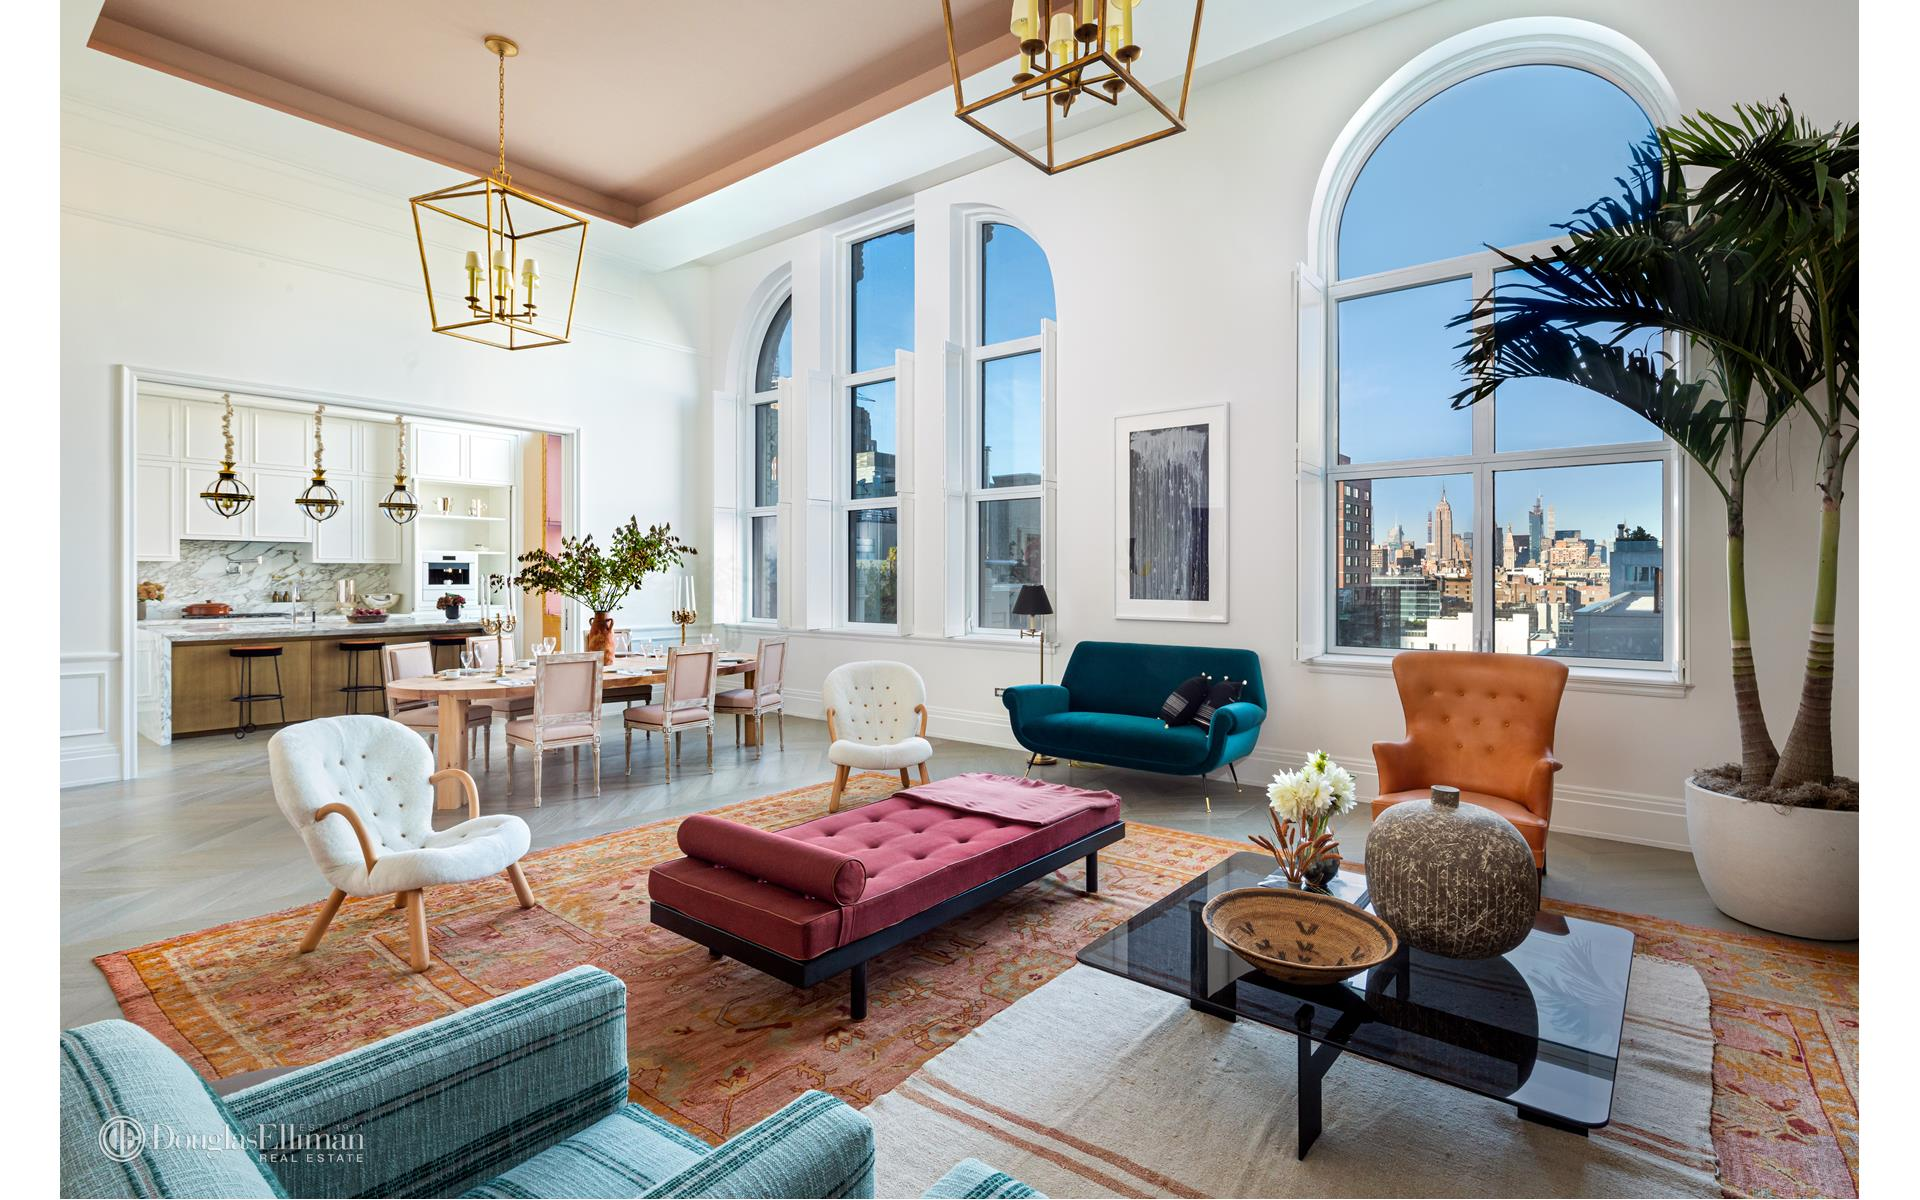 Immediate Occupancy.In honor of ELLE Décor's 30th anniversary, A-List interior designer Neal Beckstedt was enlisted to design THE HOUSE OF ELLE DÉCOR, a penthouse that commemorates the best in style and design located in Salon Penthouse 14D, a one-of-kind residence set within the Crown Collection at 108 Leonard.This 4,150 square foot 3-bedroom, 3.5-bath residence features impressive scale, volume, and character. Upon arrival, a discreet entry leads to an expansive great room featuring architectural windows of epic proportion. The great room has exceptional ceiling heights of approximately 15 feet, one of only a few residences with such dramatic scale found within 108 Leonard. Within the generously sized windowed kitchen, Scavolini cabinetry, custom designed by Jeffrey Beers International exclusively for 108 Leonard, is featured along with a Calacatta Vagli marble countertop, backsplash, and waterfall island replete with supplemental storage. The kitchen is also outfitted with premium appliances by Miele. The master suite, thoughtfully situated apart from the rest of the residence, features arched architectural windows, two walk-in closets, and a midnight kitchen. The elegant en suite master bathroom boasts high-honed Calacatta Mandria marble floors and walls with a separate glass enclosed shower, custom double vanity with Fantini polished chrome fixtures, two water closets and a freestanding soaking tub set along architectural, south-facing windows. Two secondary bedrooms with en suite bathrooms, positioned opposite the living areas, offer maximum privacy. A signature powder room with sculptural Nero Marquina marble sink, a library and a laundry room with washer and dryer complete this singular offering. Featuring a discreet drive-in motor reception including valet parking and three luxurious attended lobbies each with its own elevator bank, 108 Leonard offers both the intimate experience of a boutique building and the breadth of over 20,000 square feet of wellness-